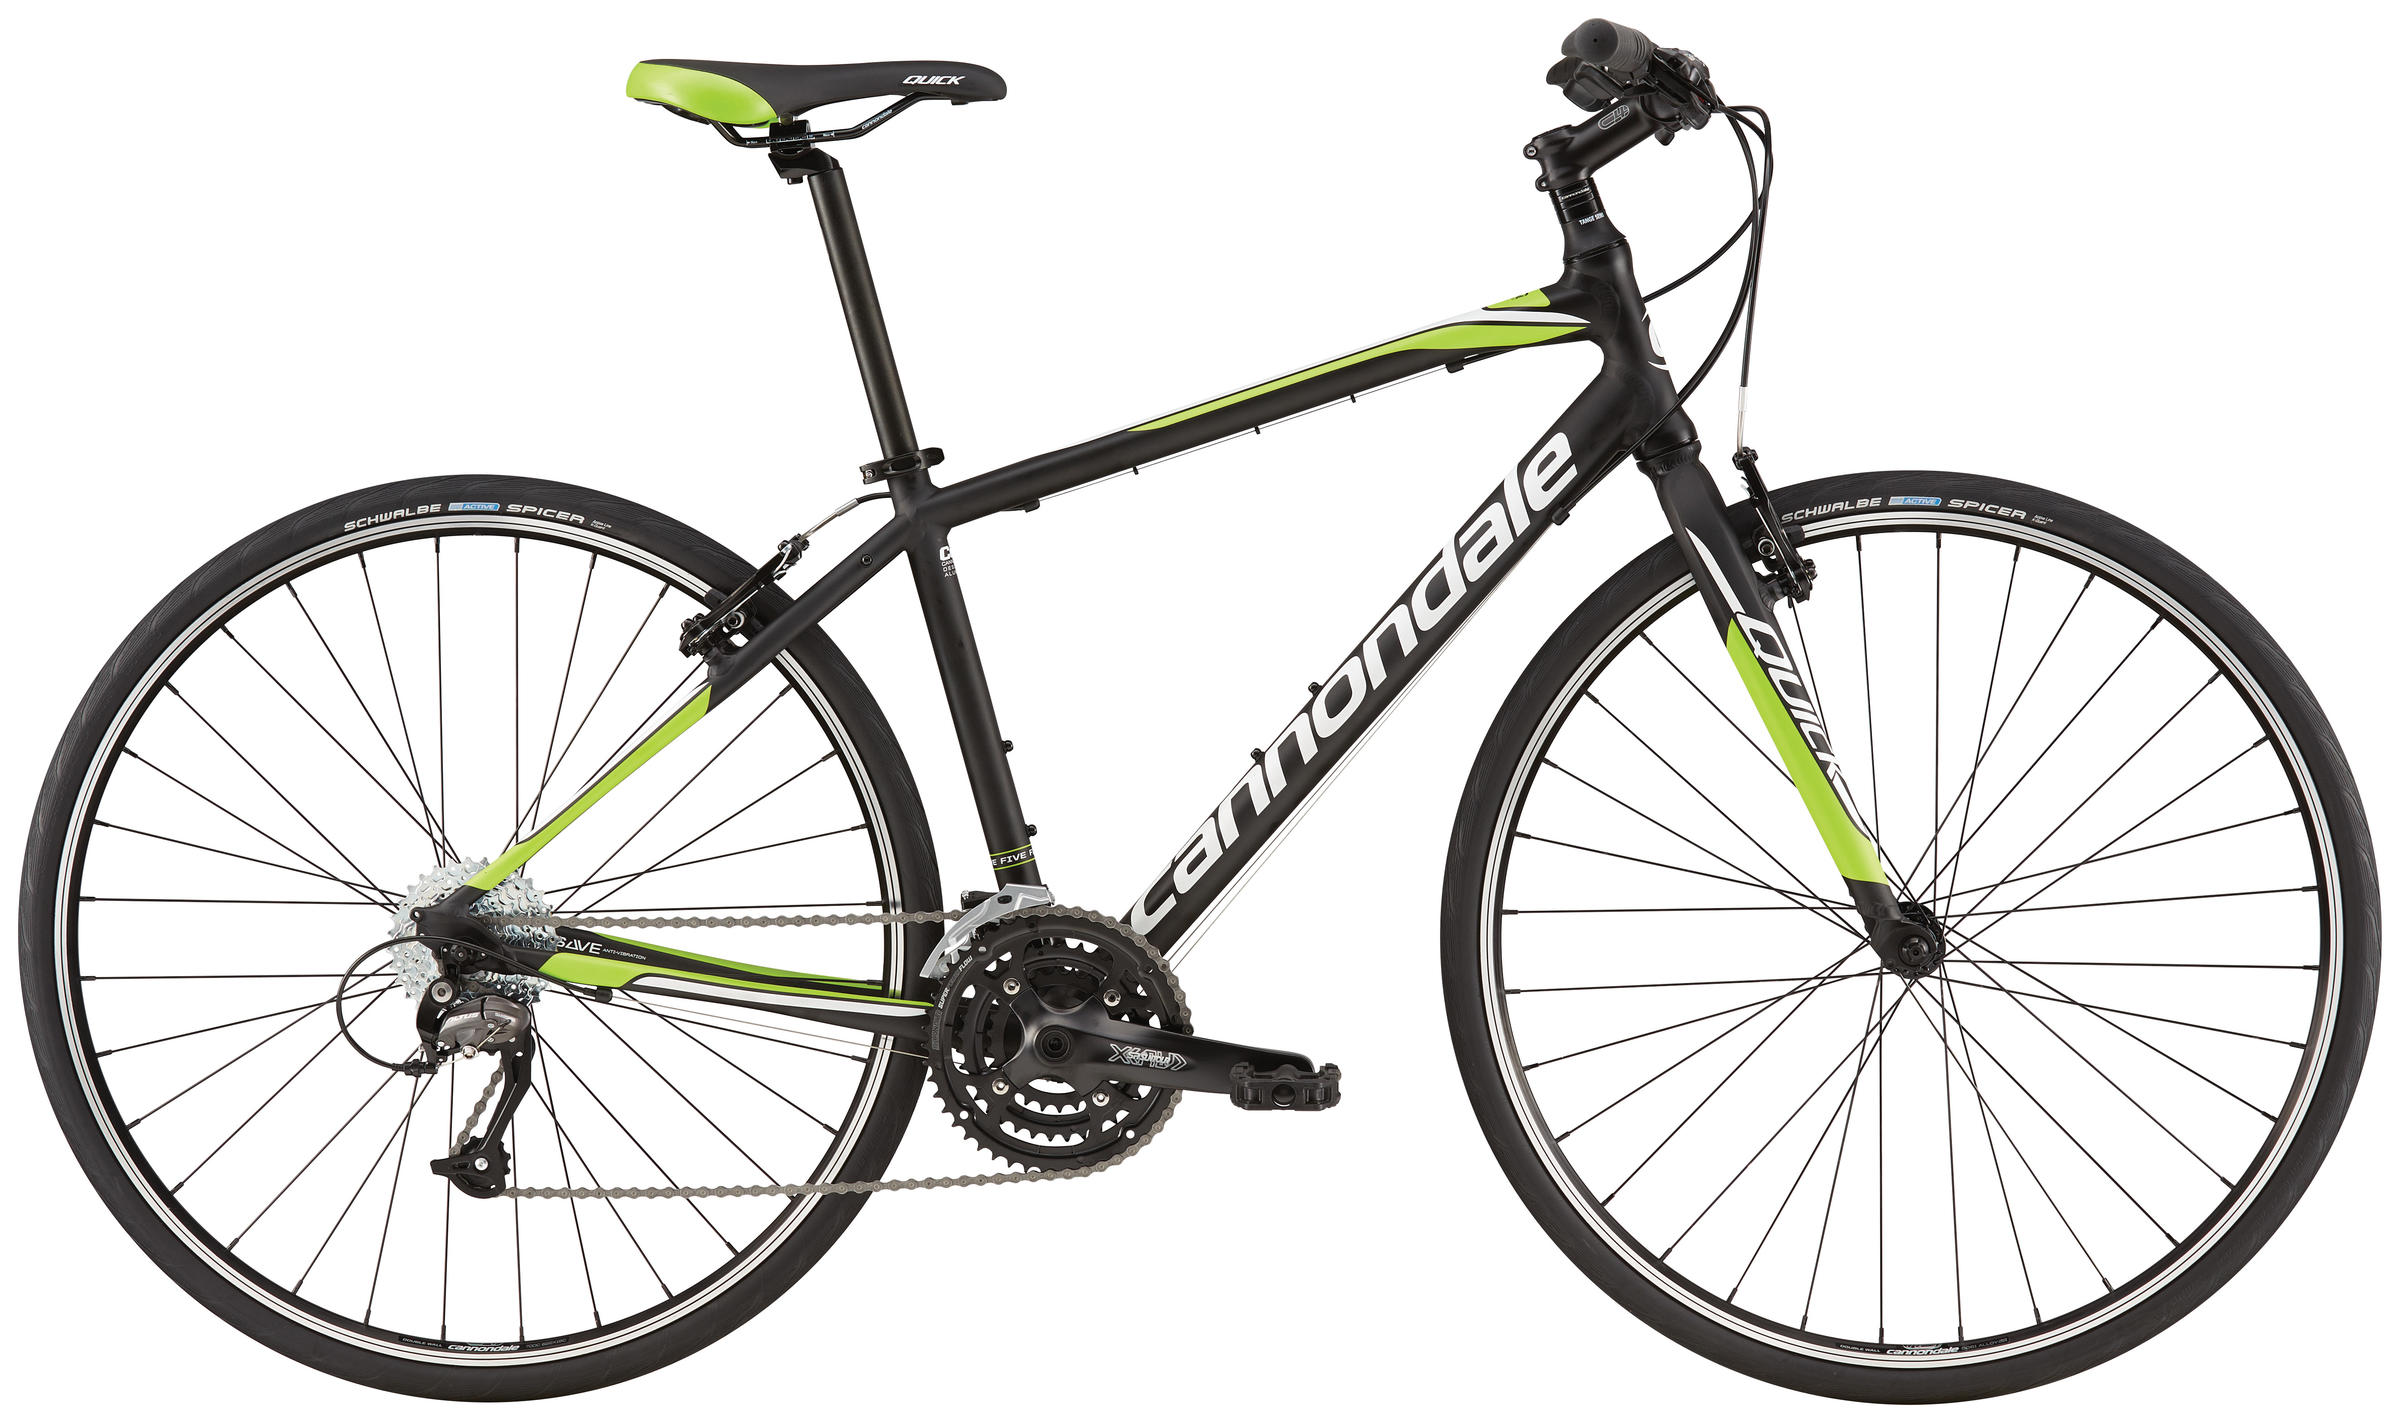 b87f8851553 Cannondale Quick 5 - Plaine and Son - Schenectady, NY